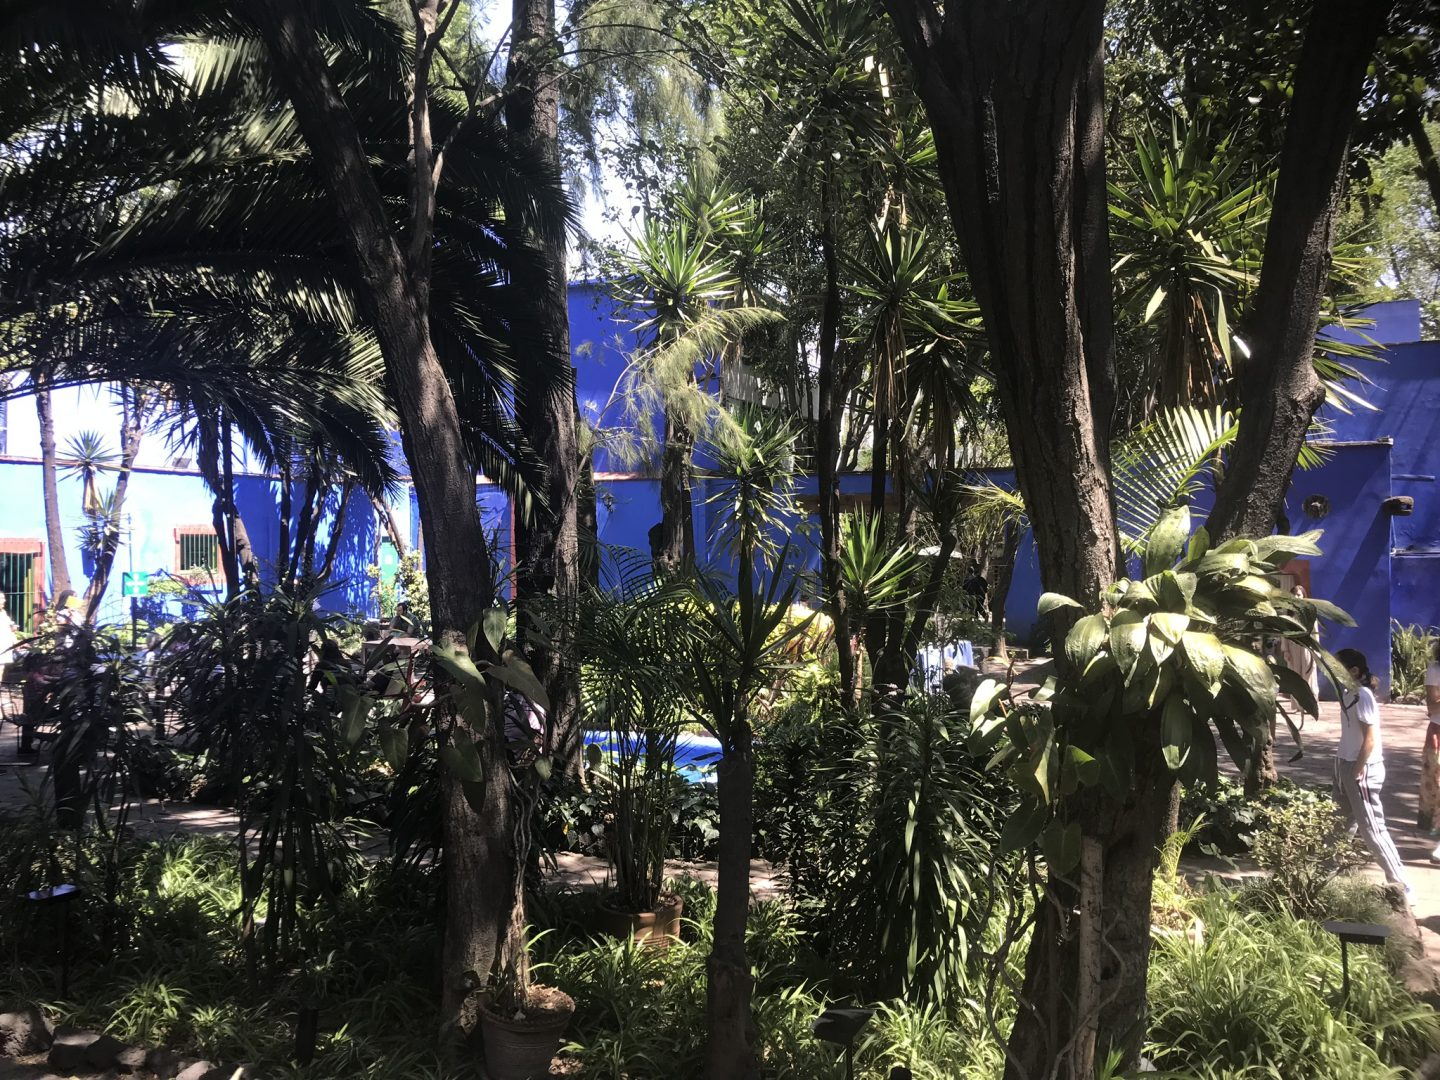 The grounds of Casa Azul, Frida Kahlo Museum, Mexico City